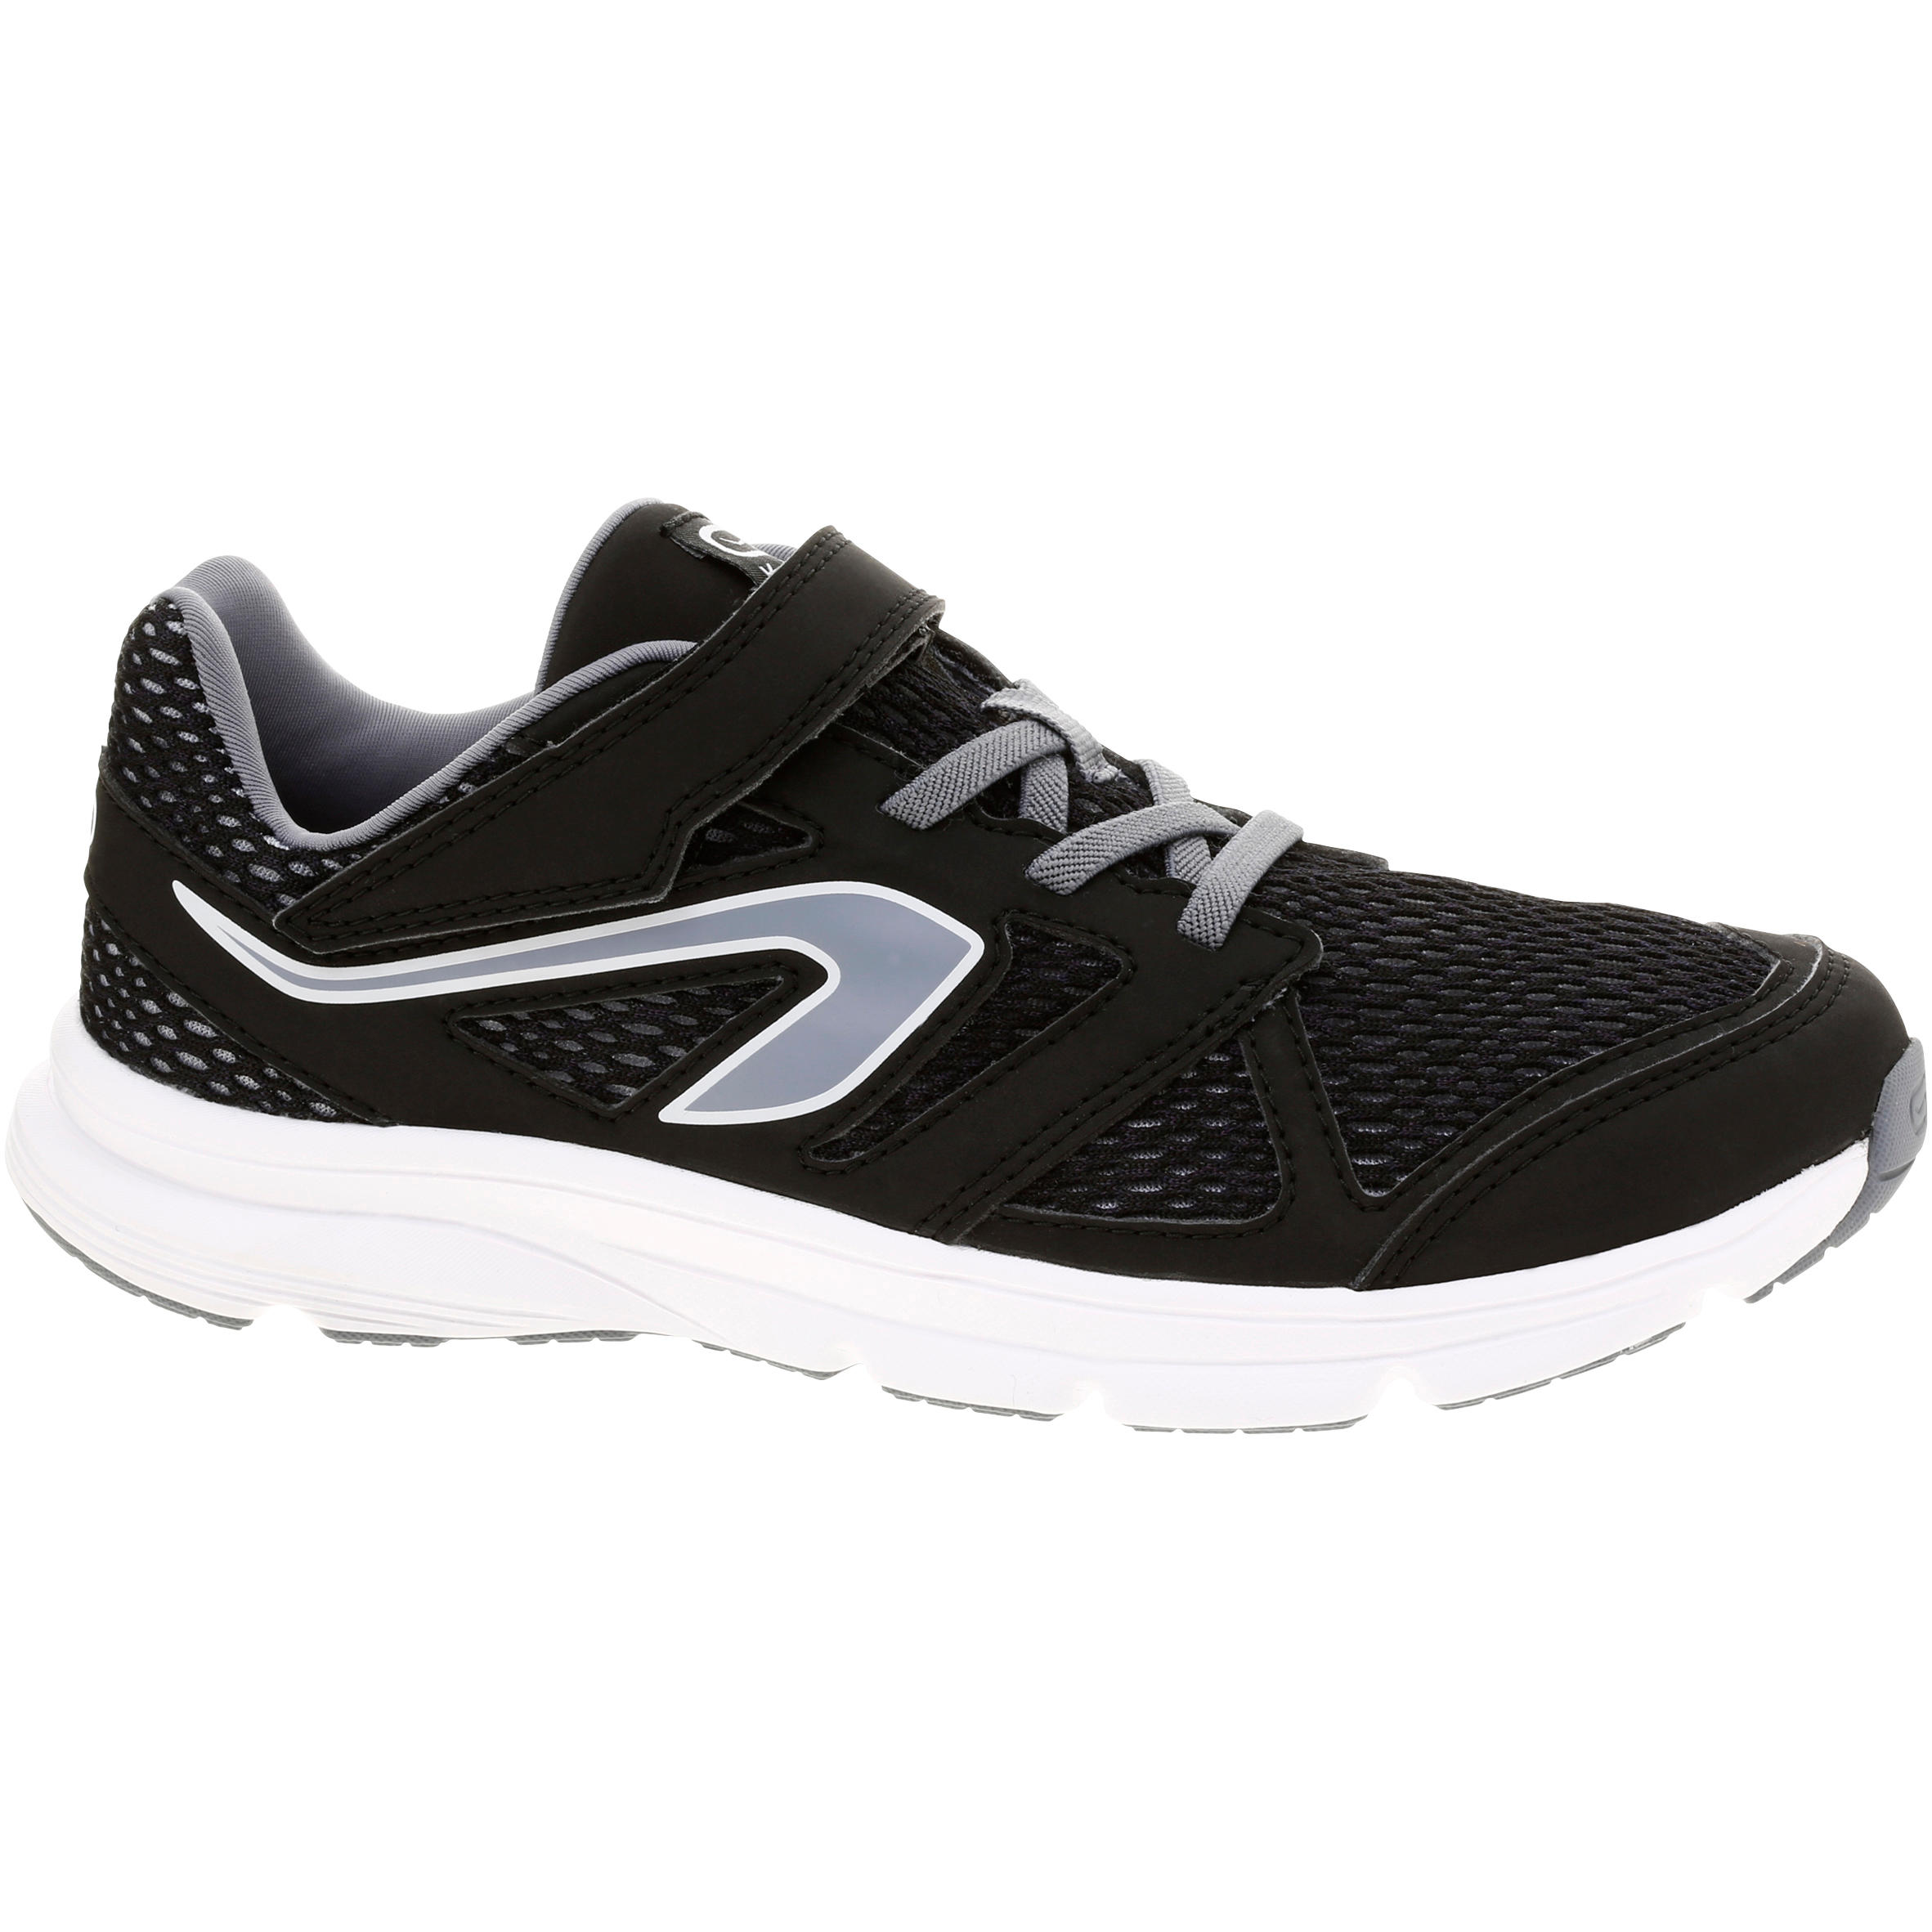 Ekiden Active Easy Children's Running Shoes - Black/Grey